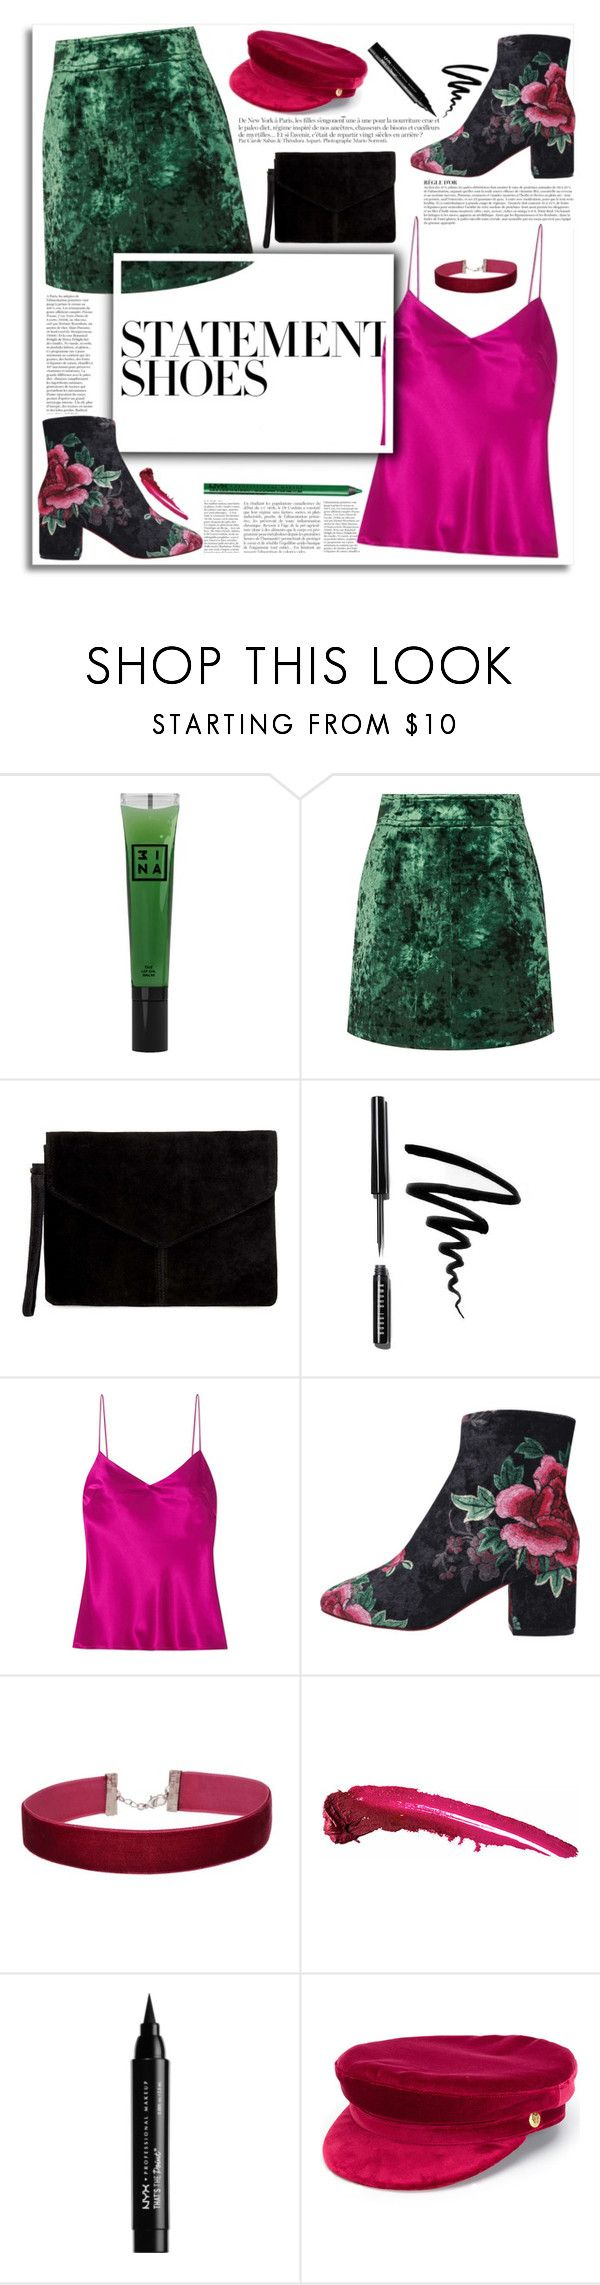 """""""TCS: Statement Boots"""" by tribecalledstyle ❤ liked on Polyvore featuring 3ina, Anja, Sandro, Miss Selfridge, Bobbi Brown Cosmetics, Galvan, NYX and Manokhi"""